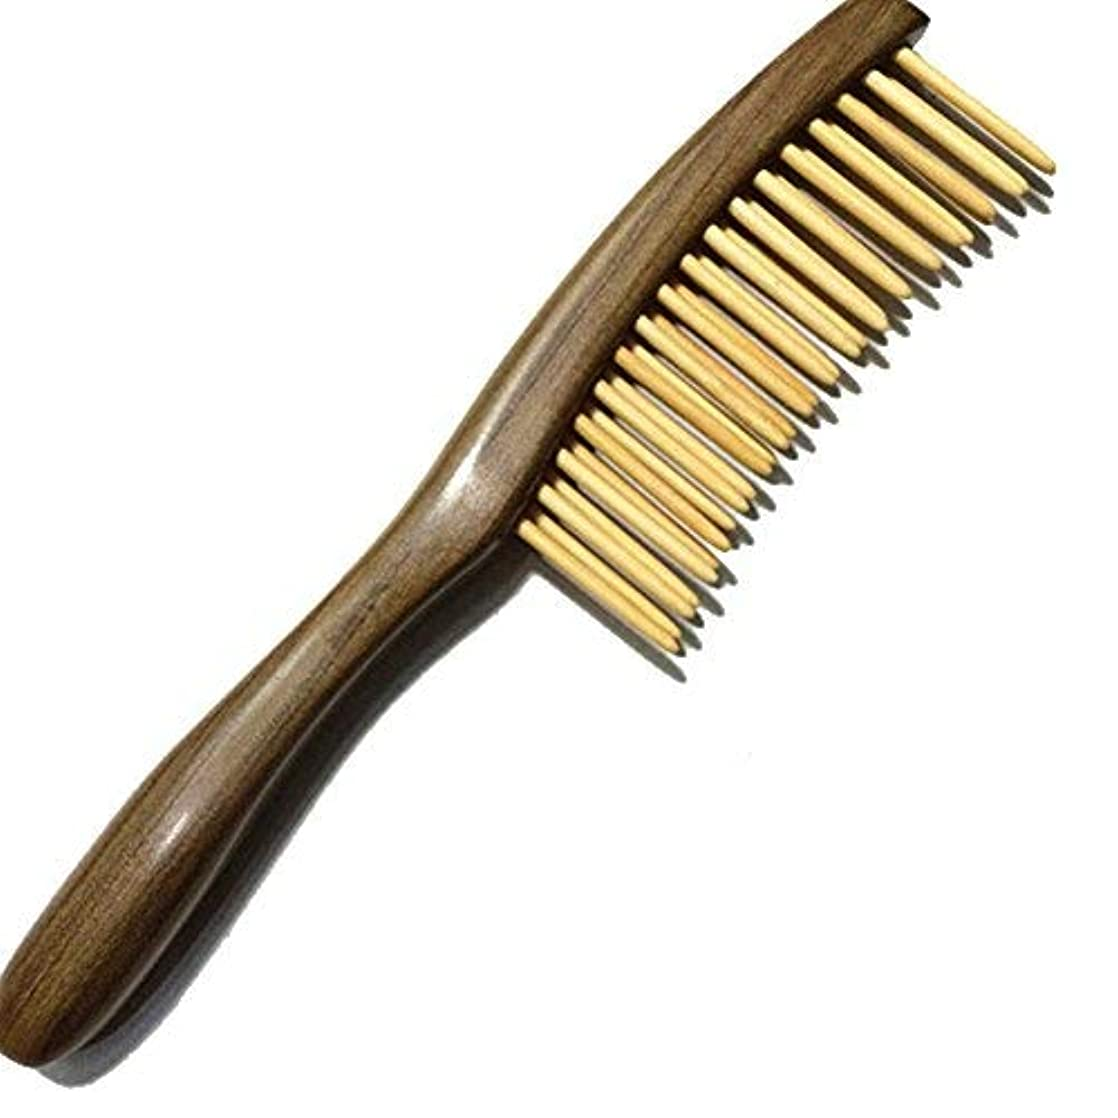 チャップ好ましい適応的Fitlyiee Double Rows Teeth Sandalwood Hair Comb Anti-Static Handmade Wide Tooth Wooden Comb [並行輸入品]